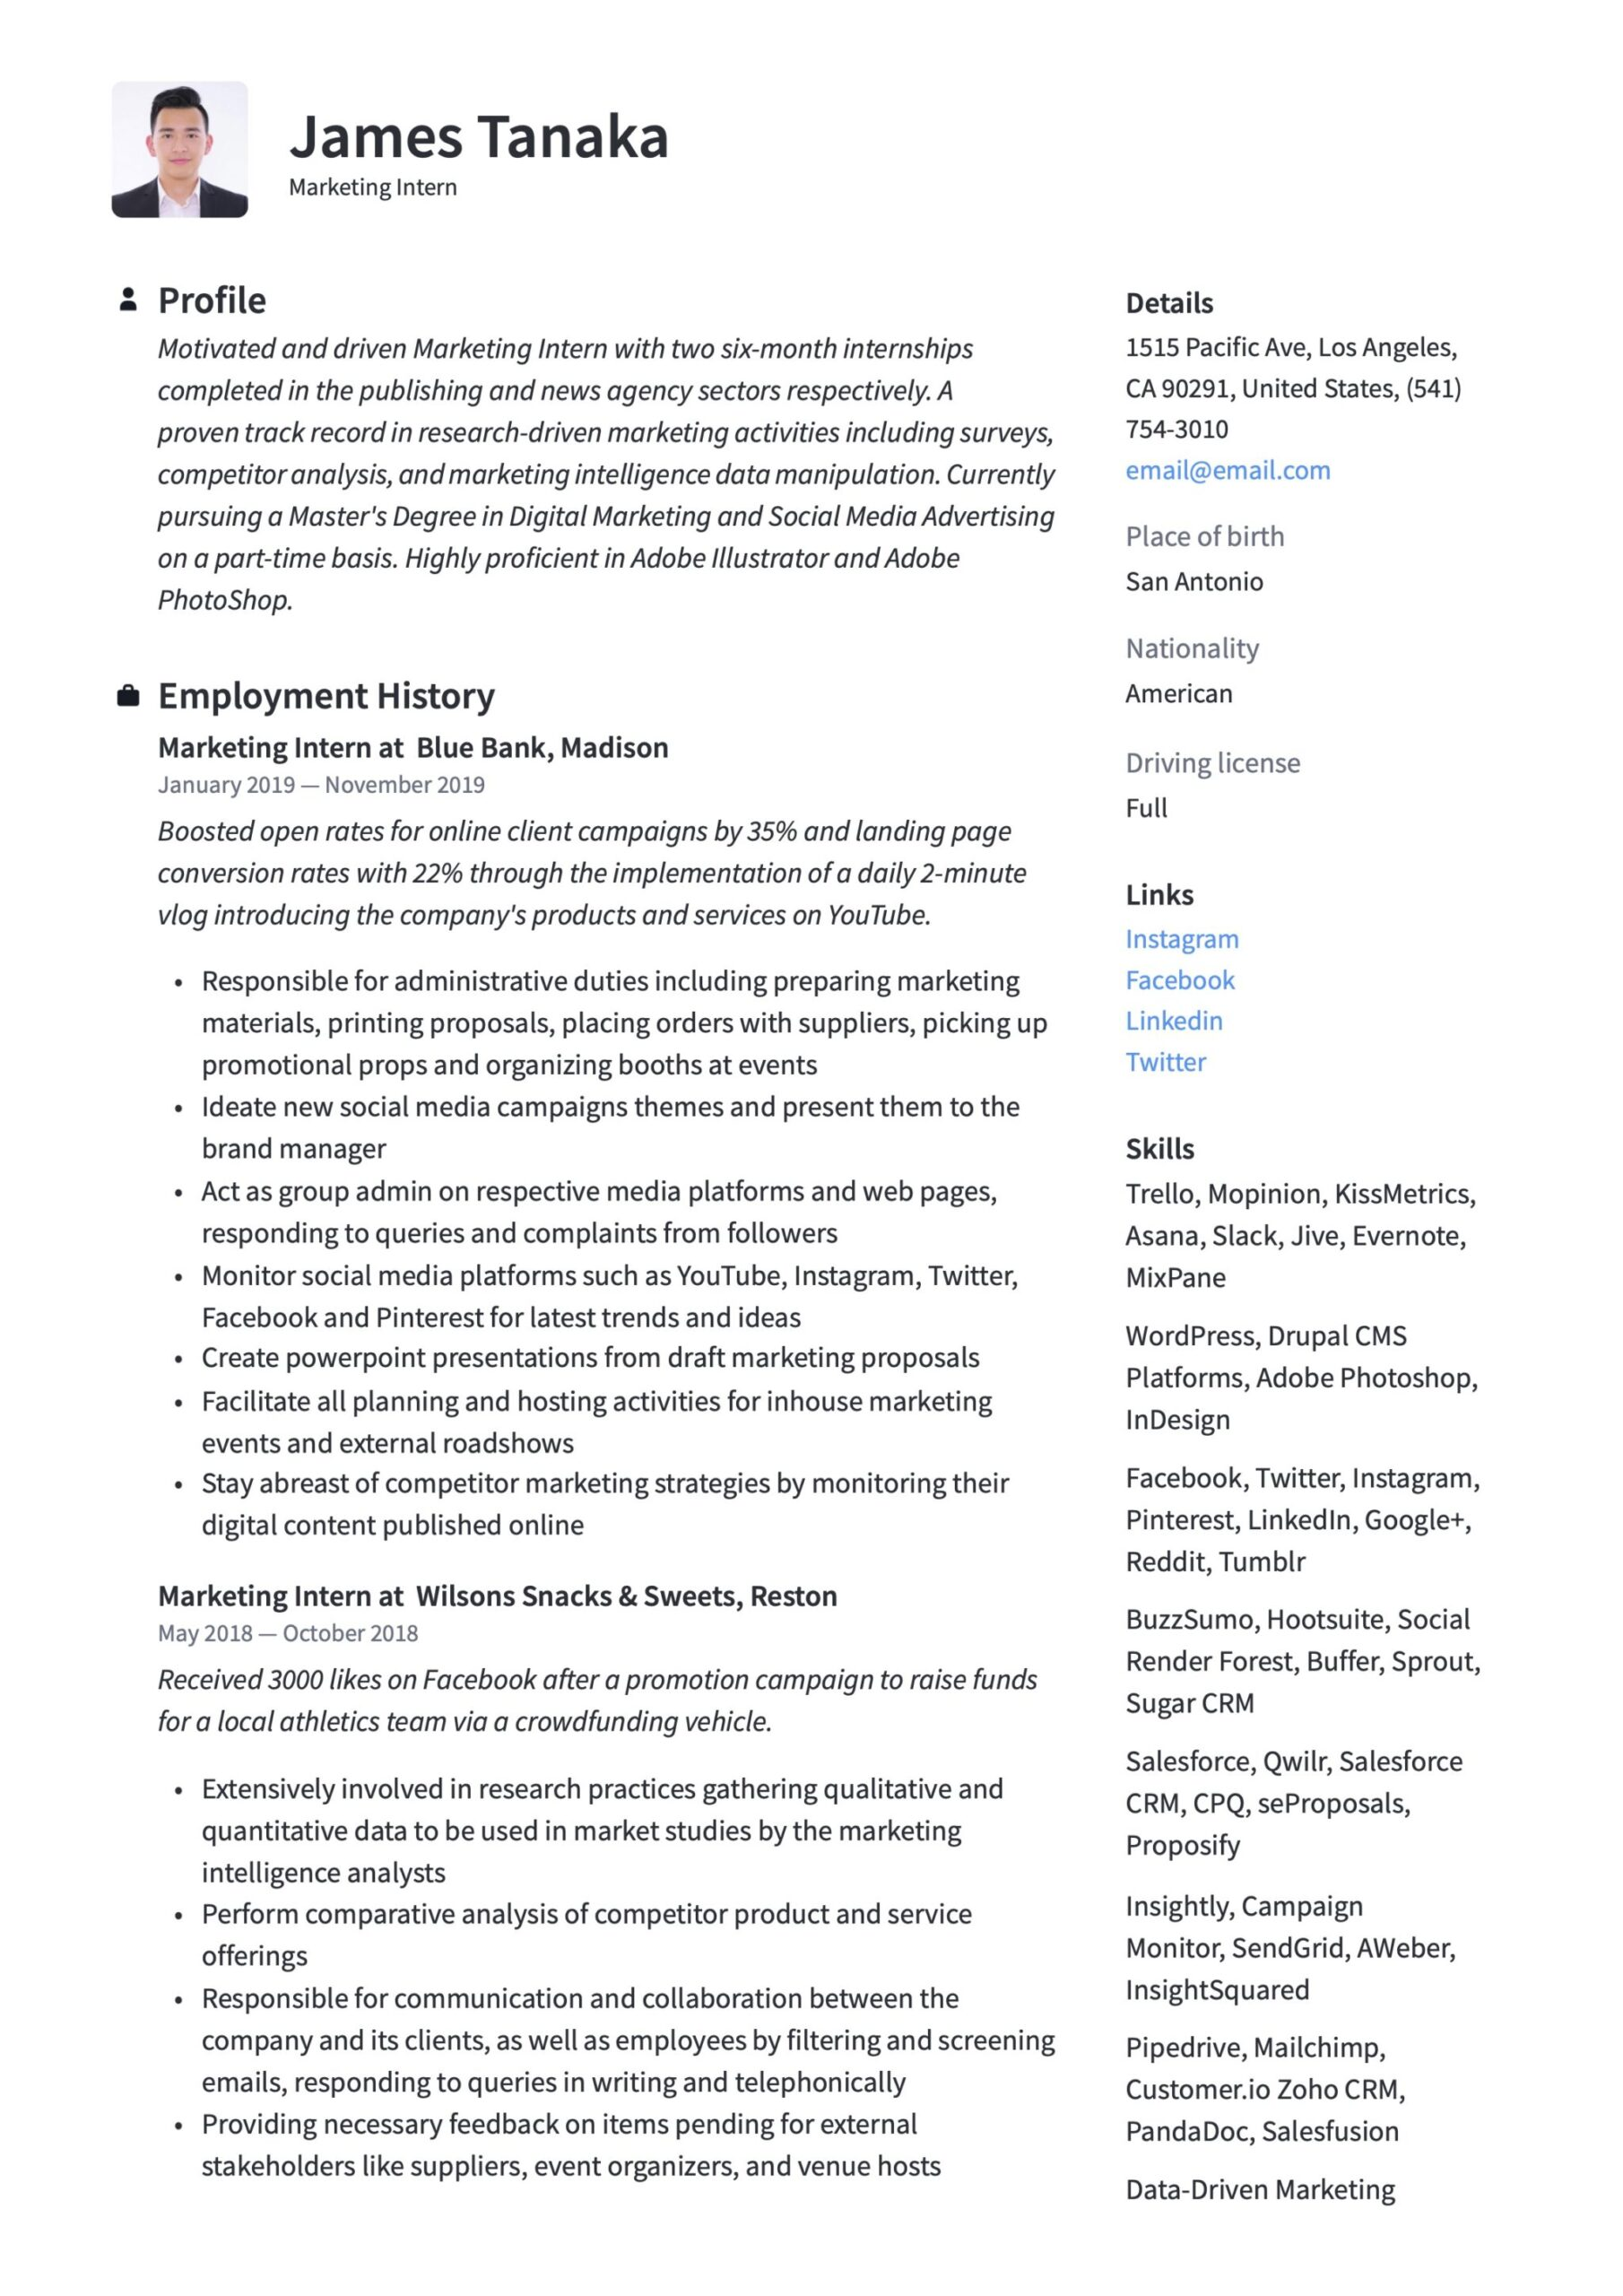 marketing intern resume writing guide templates student best file type for combination Resume Marketing Student Resume